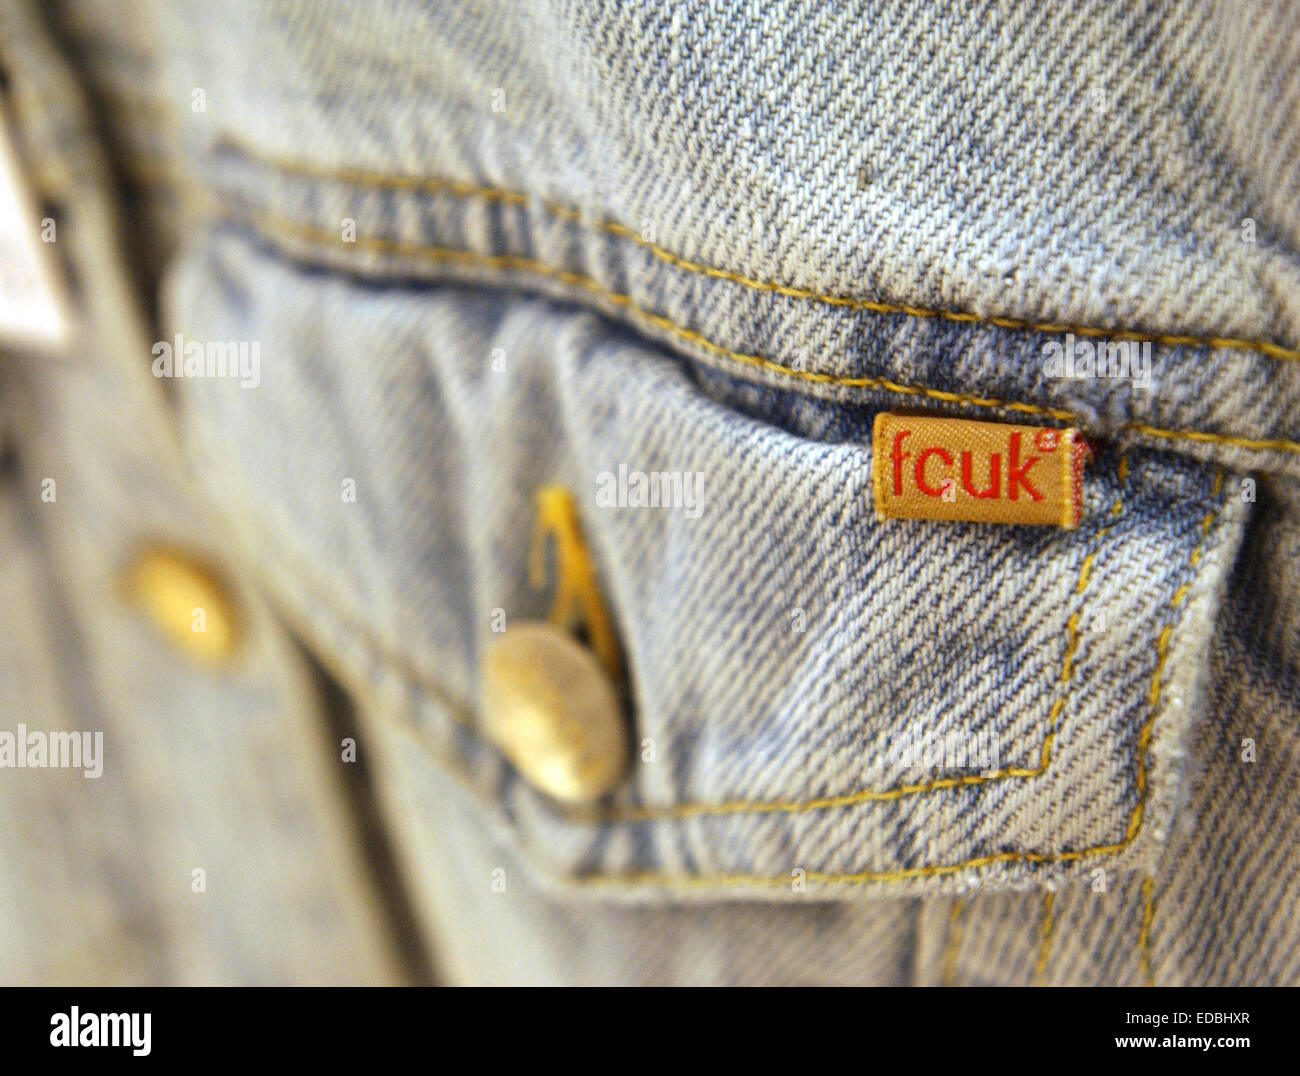 French Connection FCUK branded jeans - Stock Image